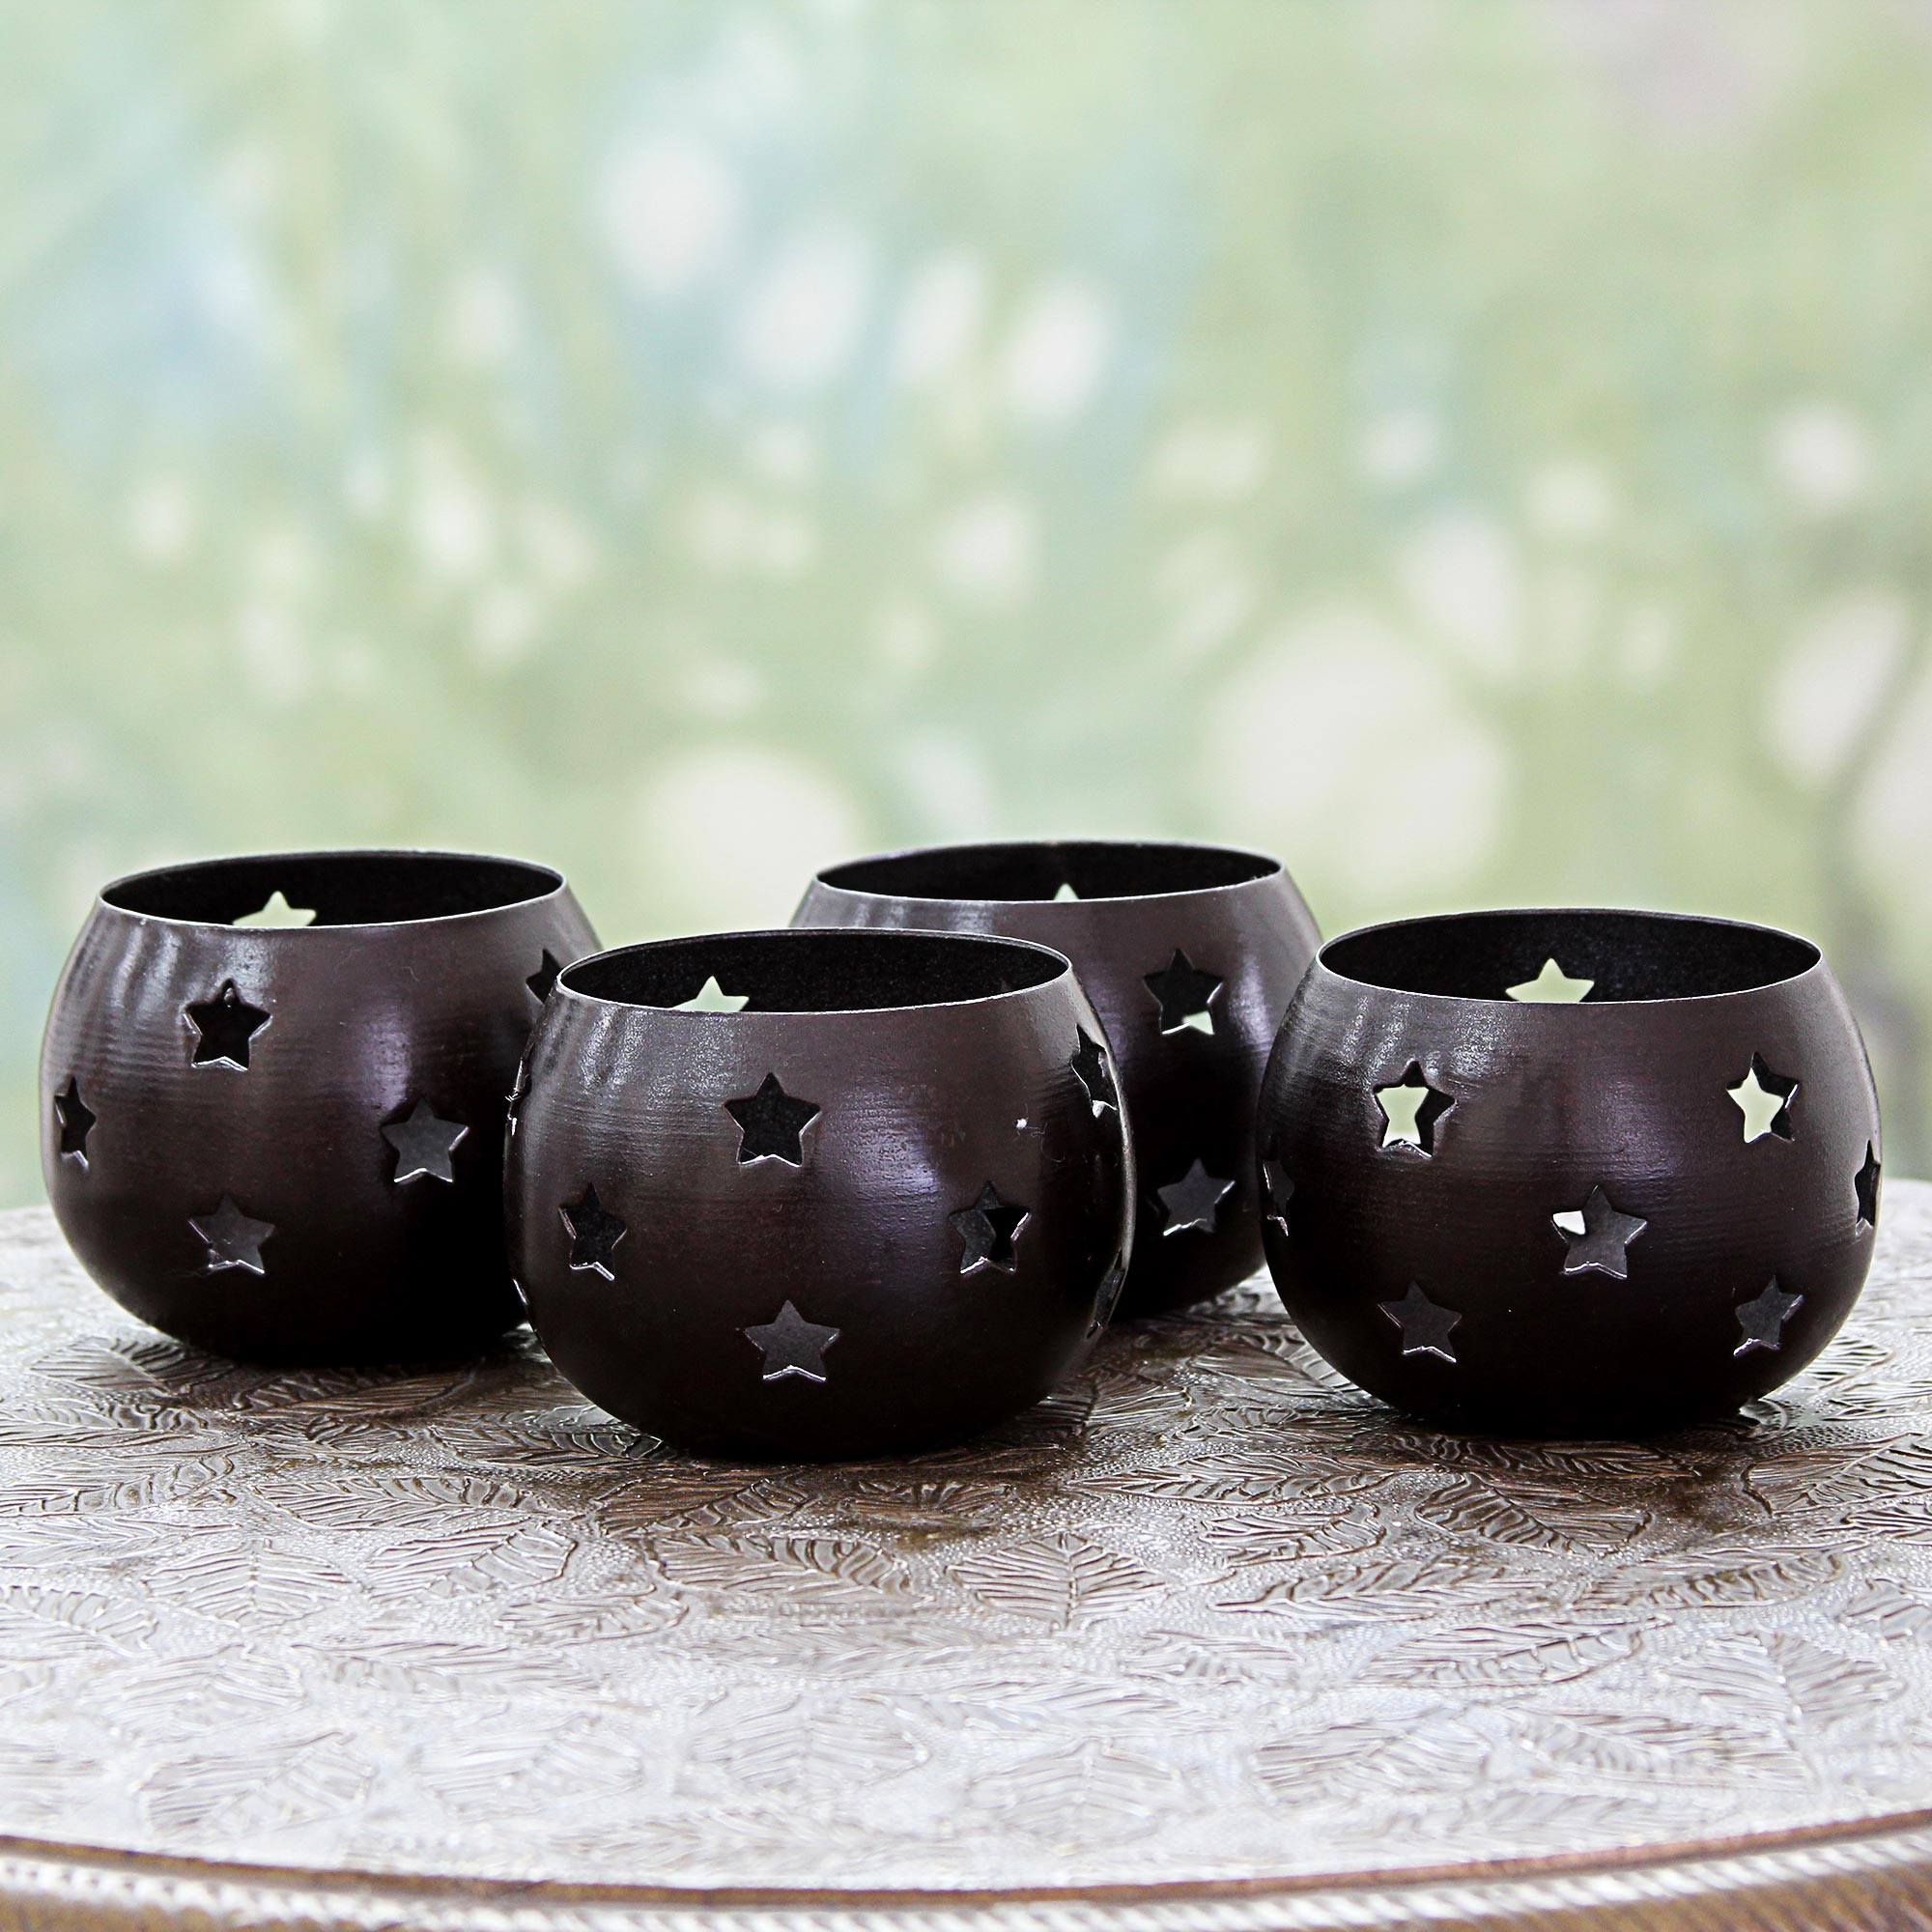 Chocolate Stars artisan hand crafted Star Motif Brown Steel Tealight Candleholders (Set of 4) unique holiday decor treasures